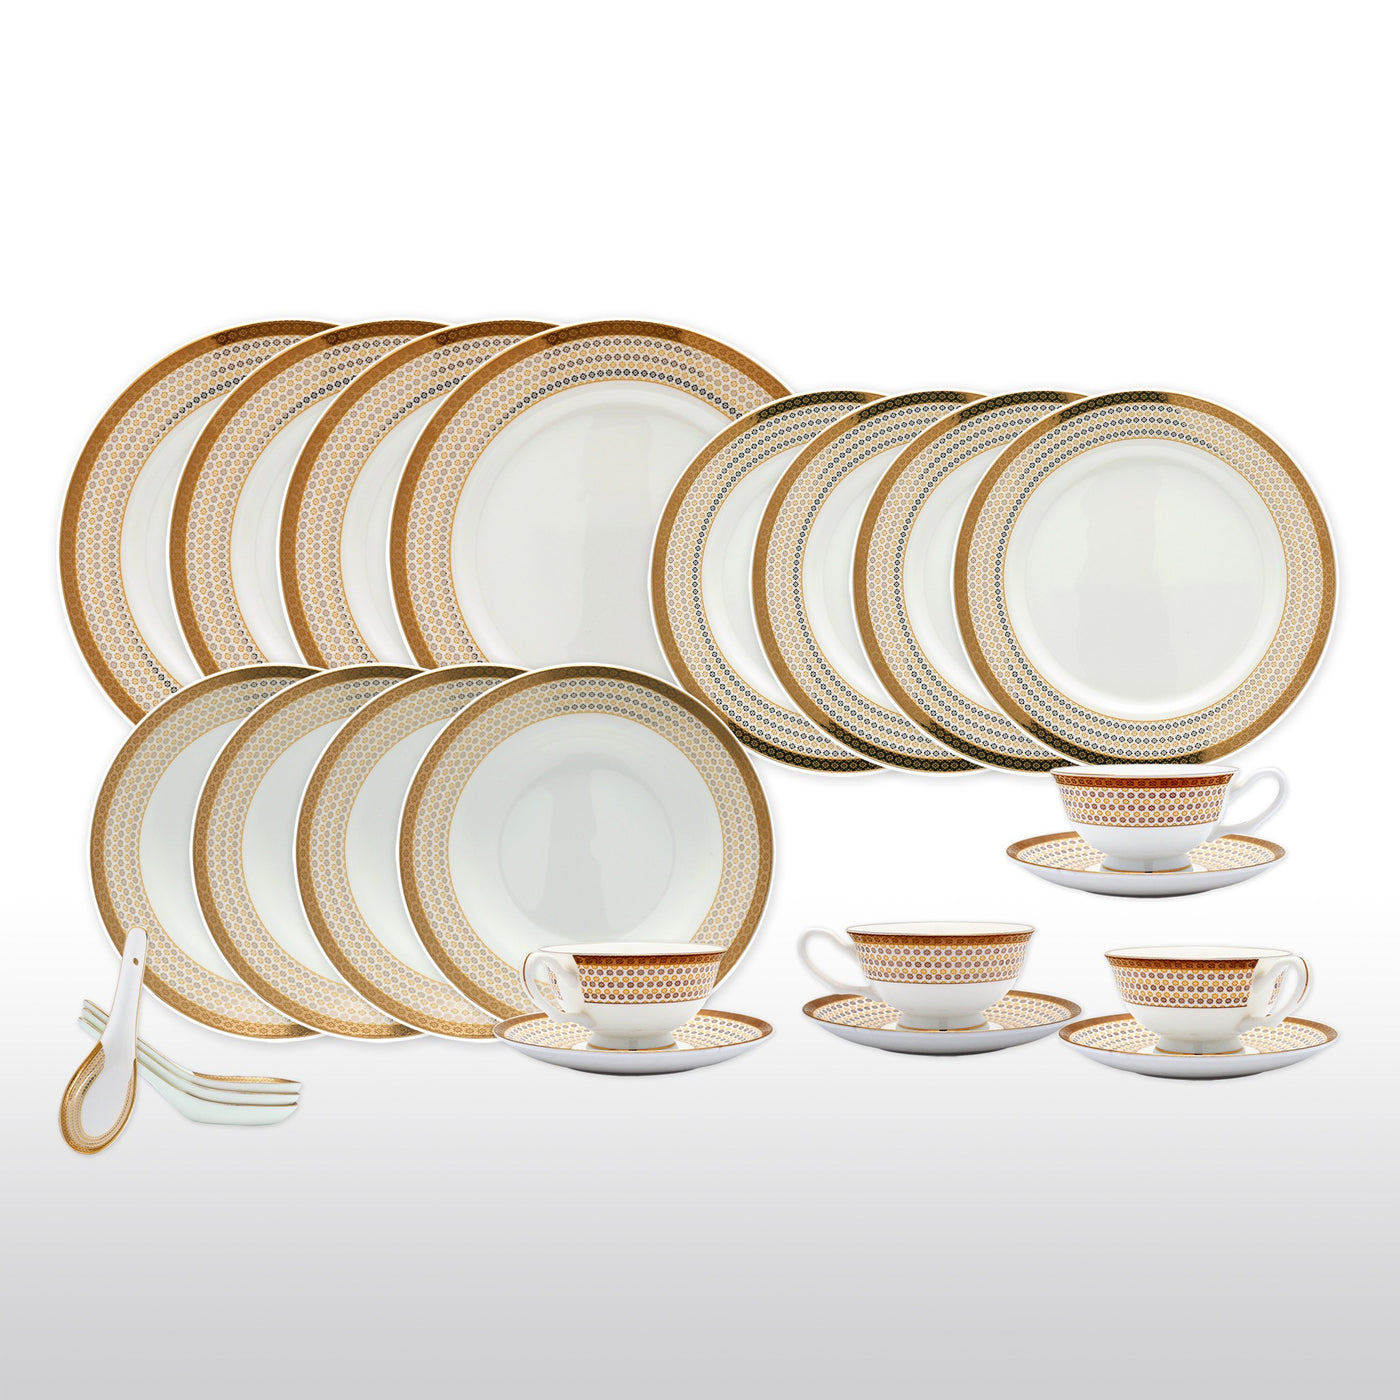 Dinnerwares - Bone China 24 Piece Dinnerware Set Diamonds And Gold Border Service For 4 ...  sc 1 st  Homenique.net & Fine Bone China Dinnerware Set - 24 Piece Service for 4 - Dotted ...